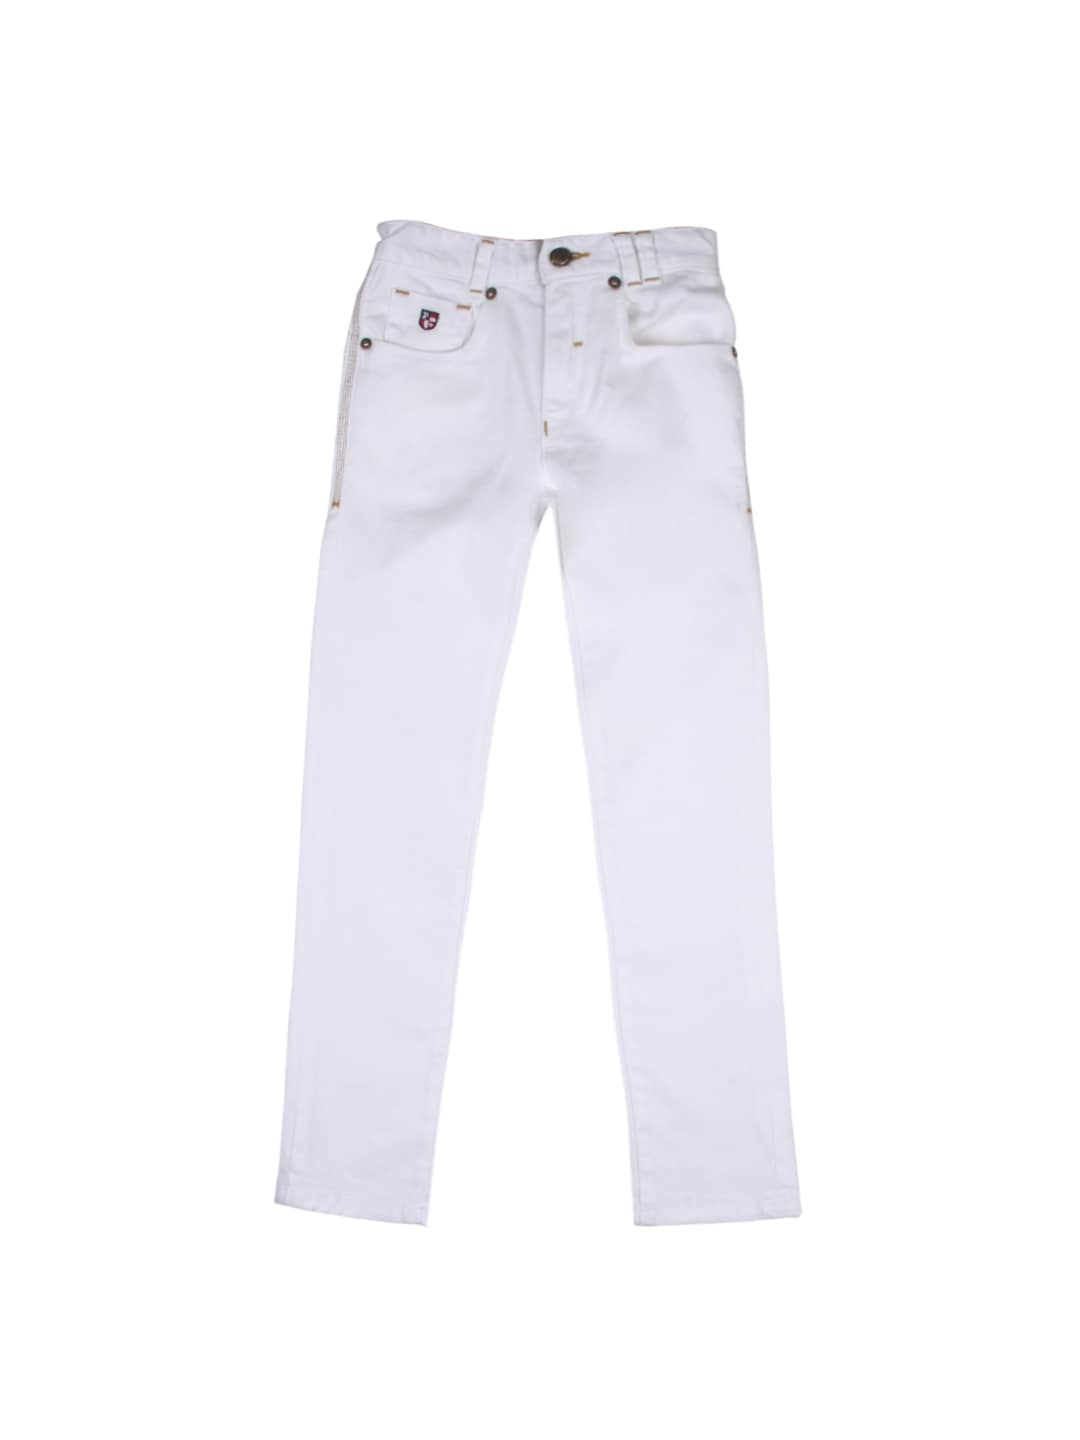 White Skinny Jeans For Kids - Jeans Am